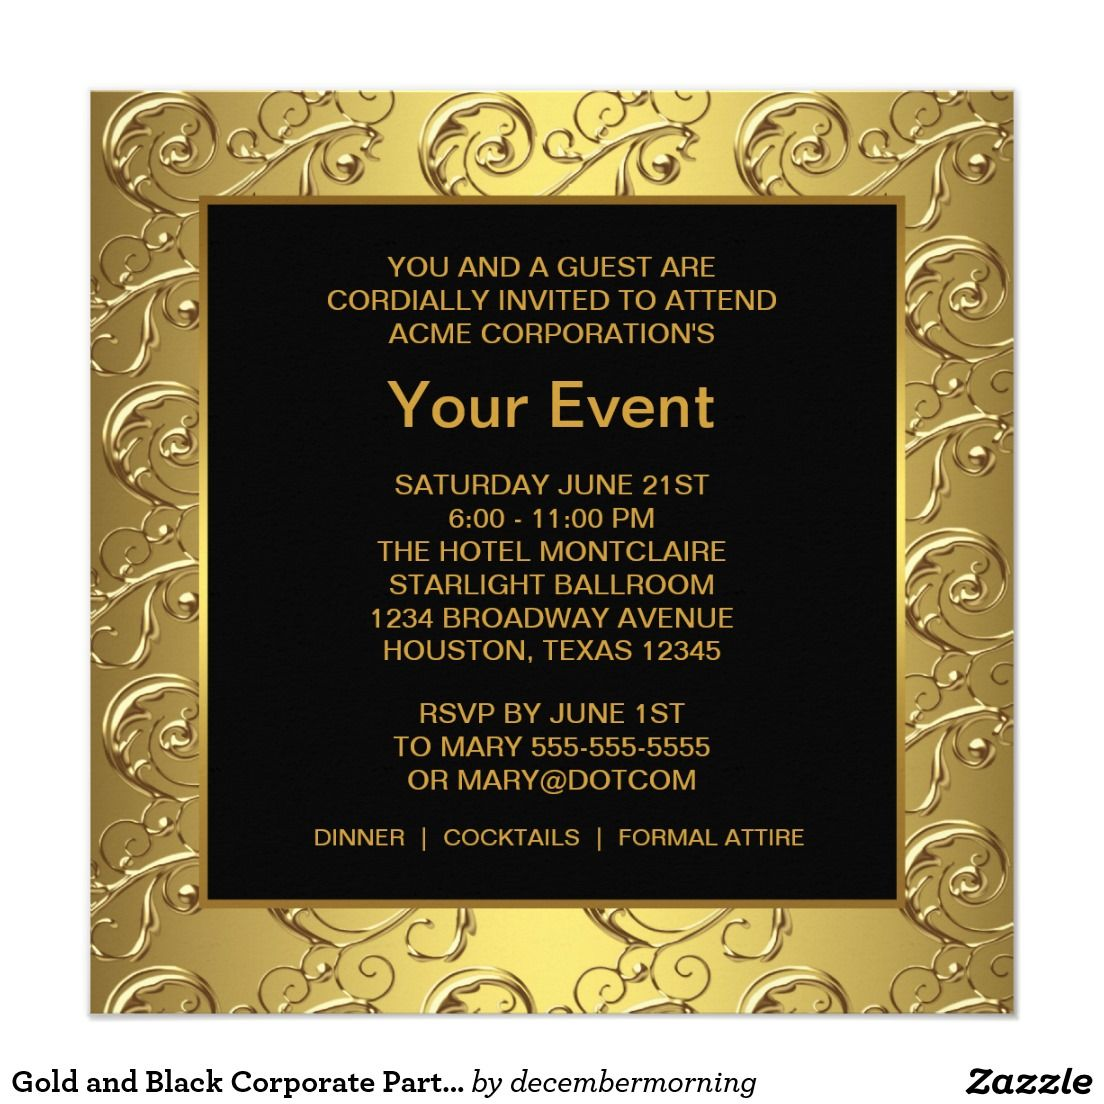 Gold And Black Corporate Party Event Invitation Zazzle Com Event Invitation Corporate Party Invitation Personalised Party Invitations